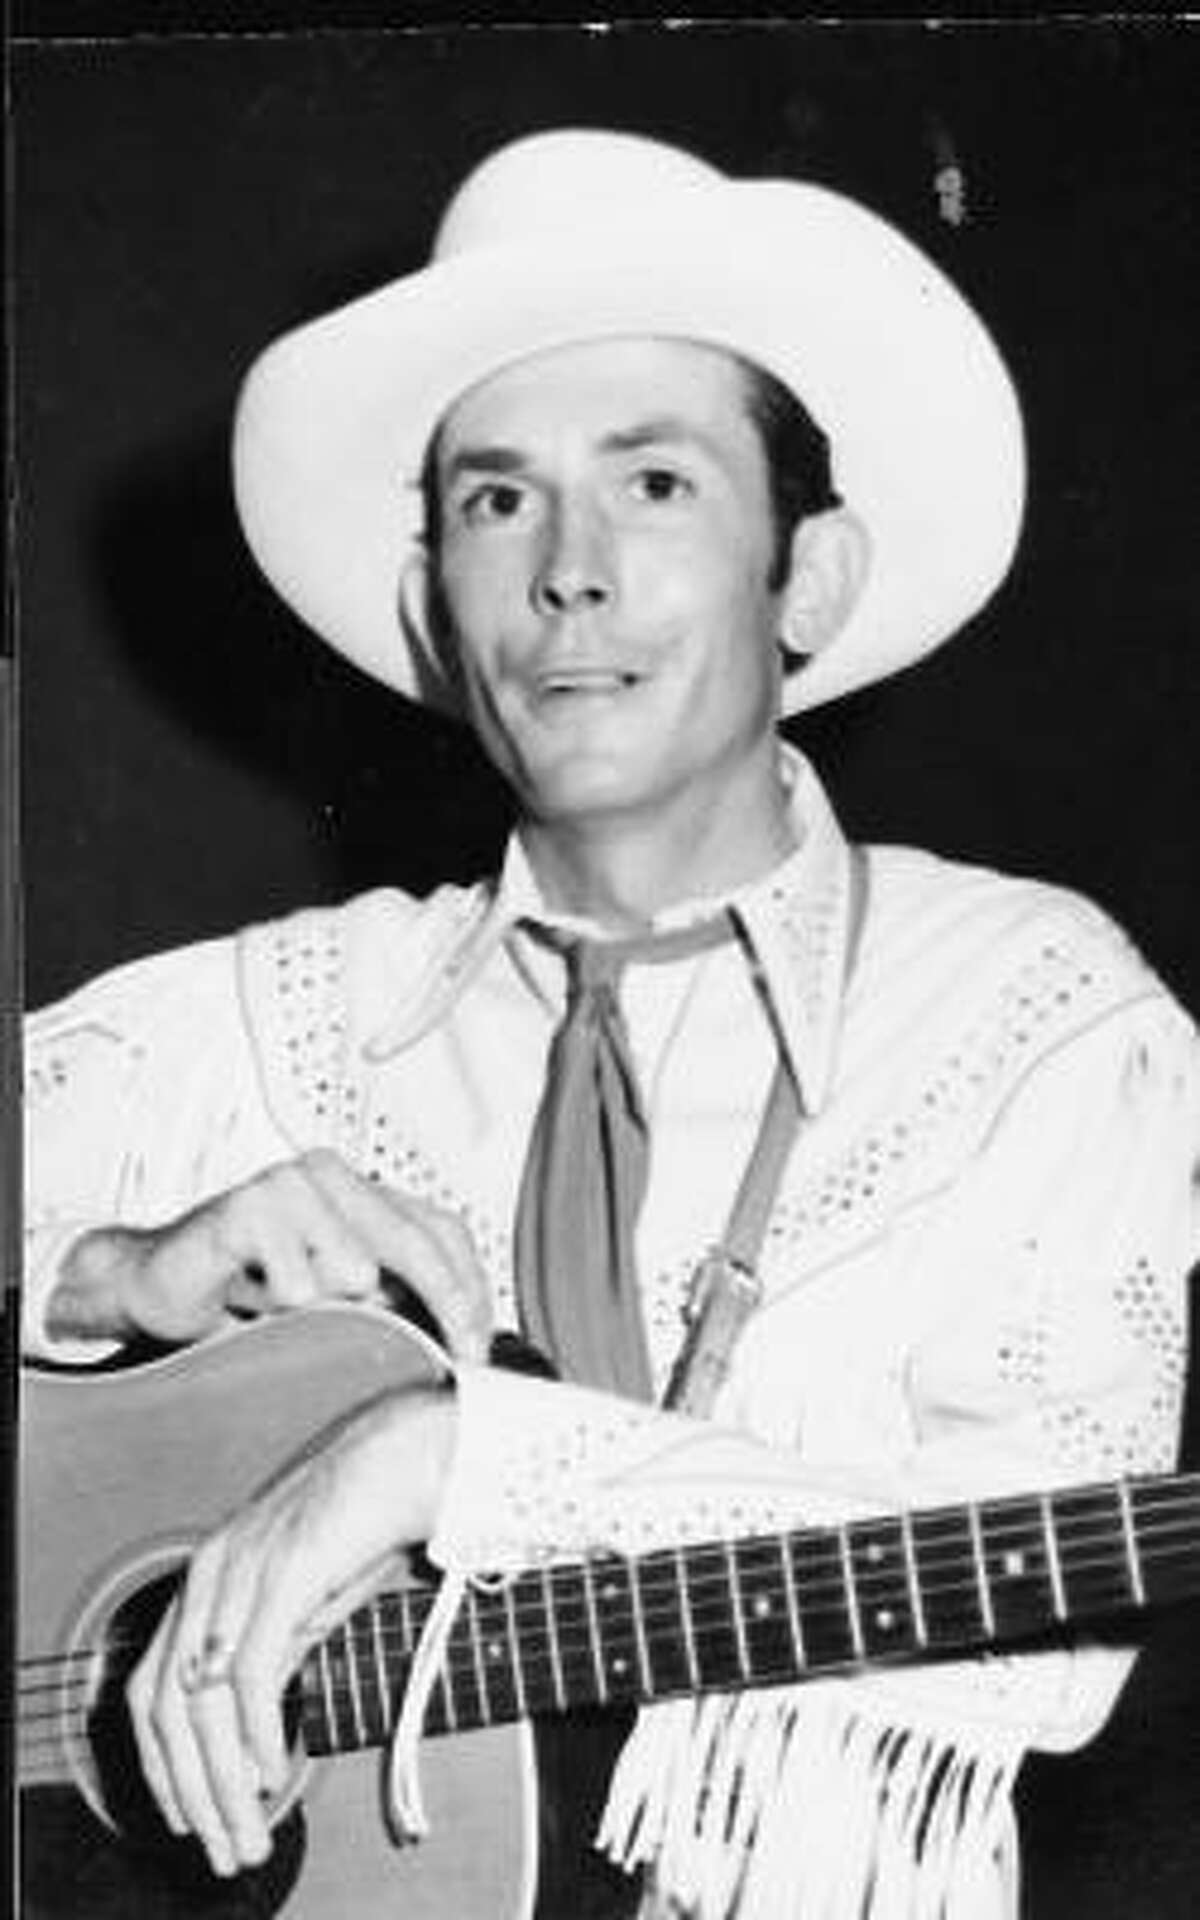 I'm So Lonesome I Could Cry , Hank Williams